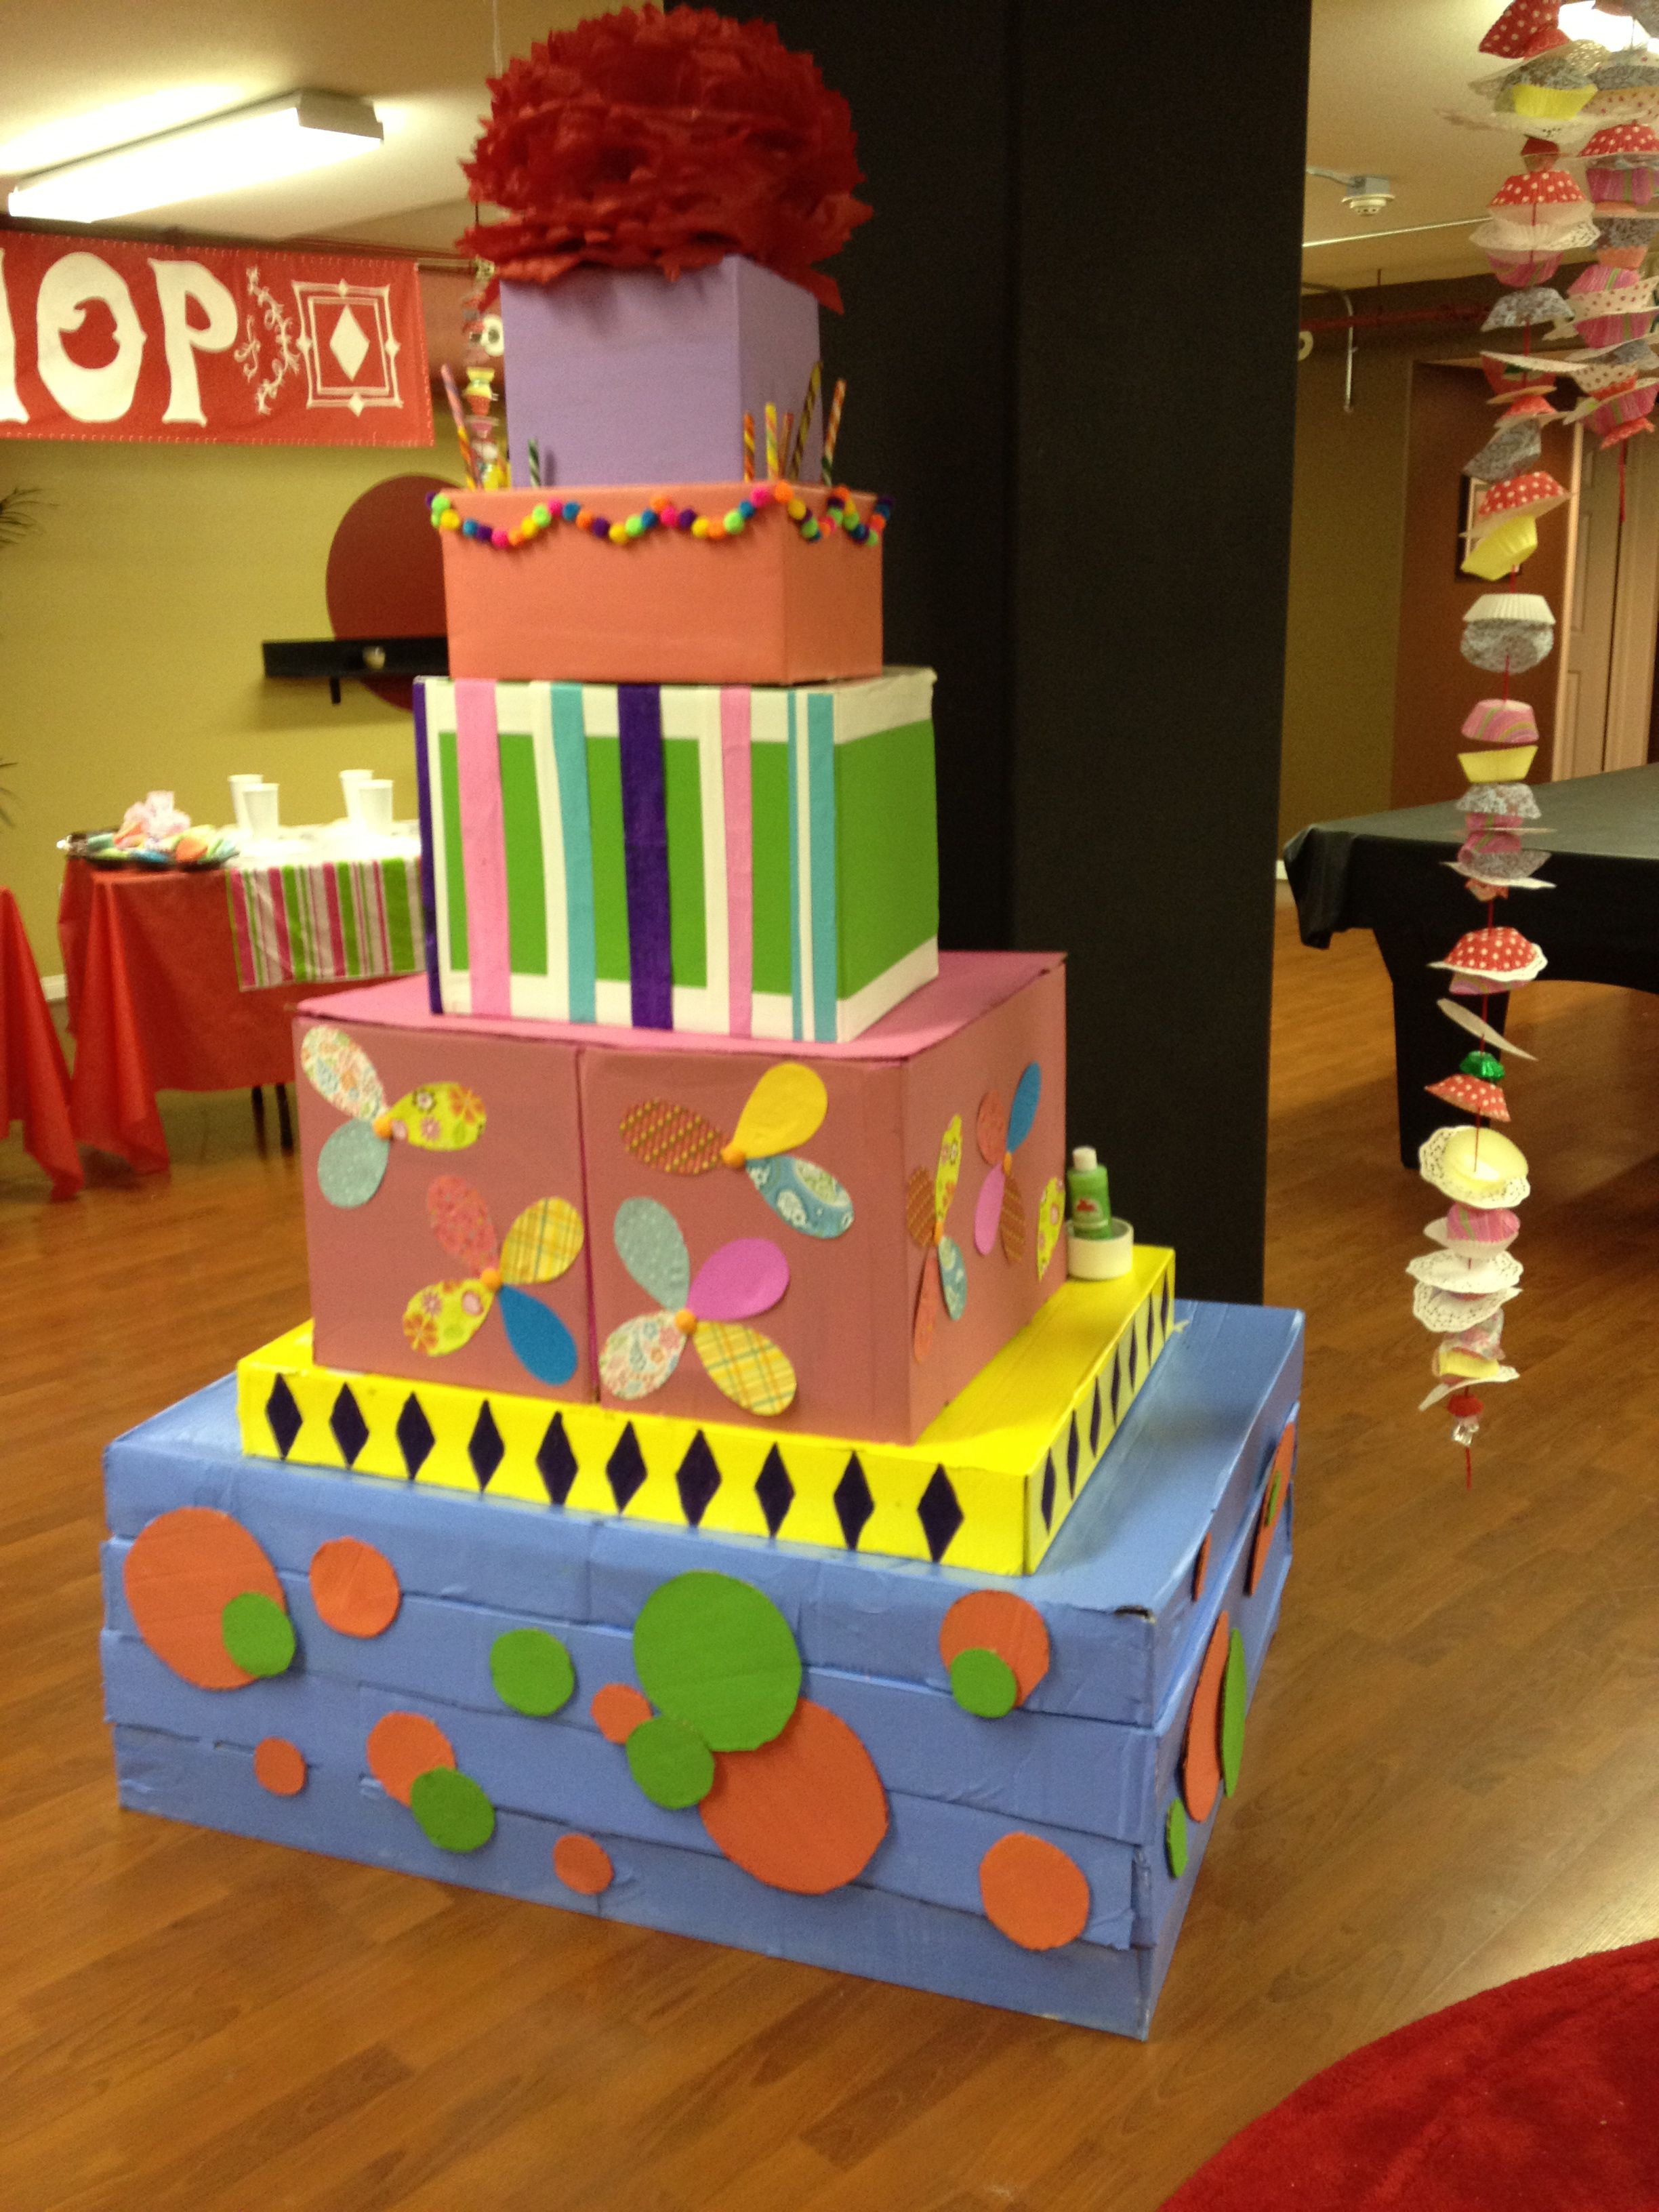 Magnificent Giant Cake Decoration Made Of Cardboard Boxes With Images Funny Birthday Cards Online Fluifree Goldxyz